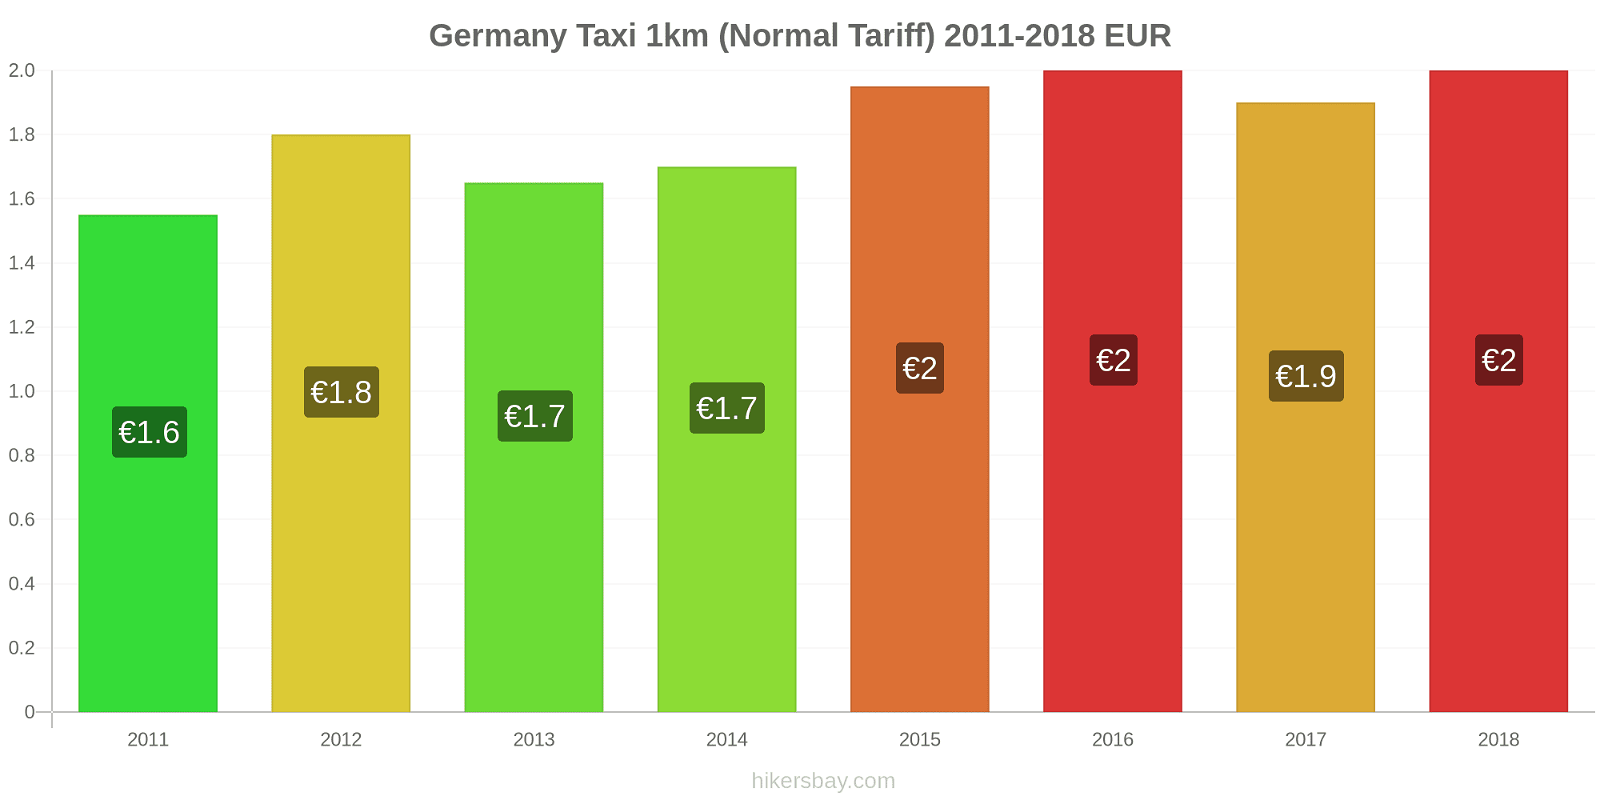 Germany price changes Taxi 1km (Normal Tariff) hikersbay.com